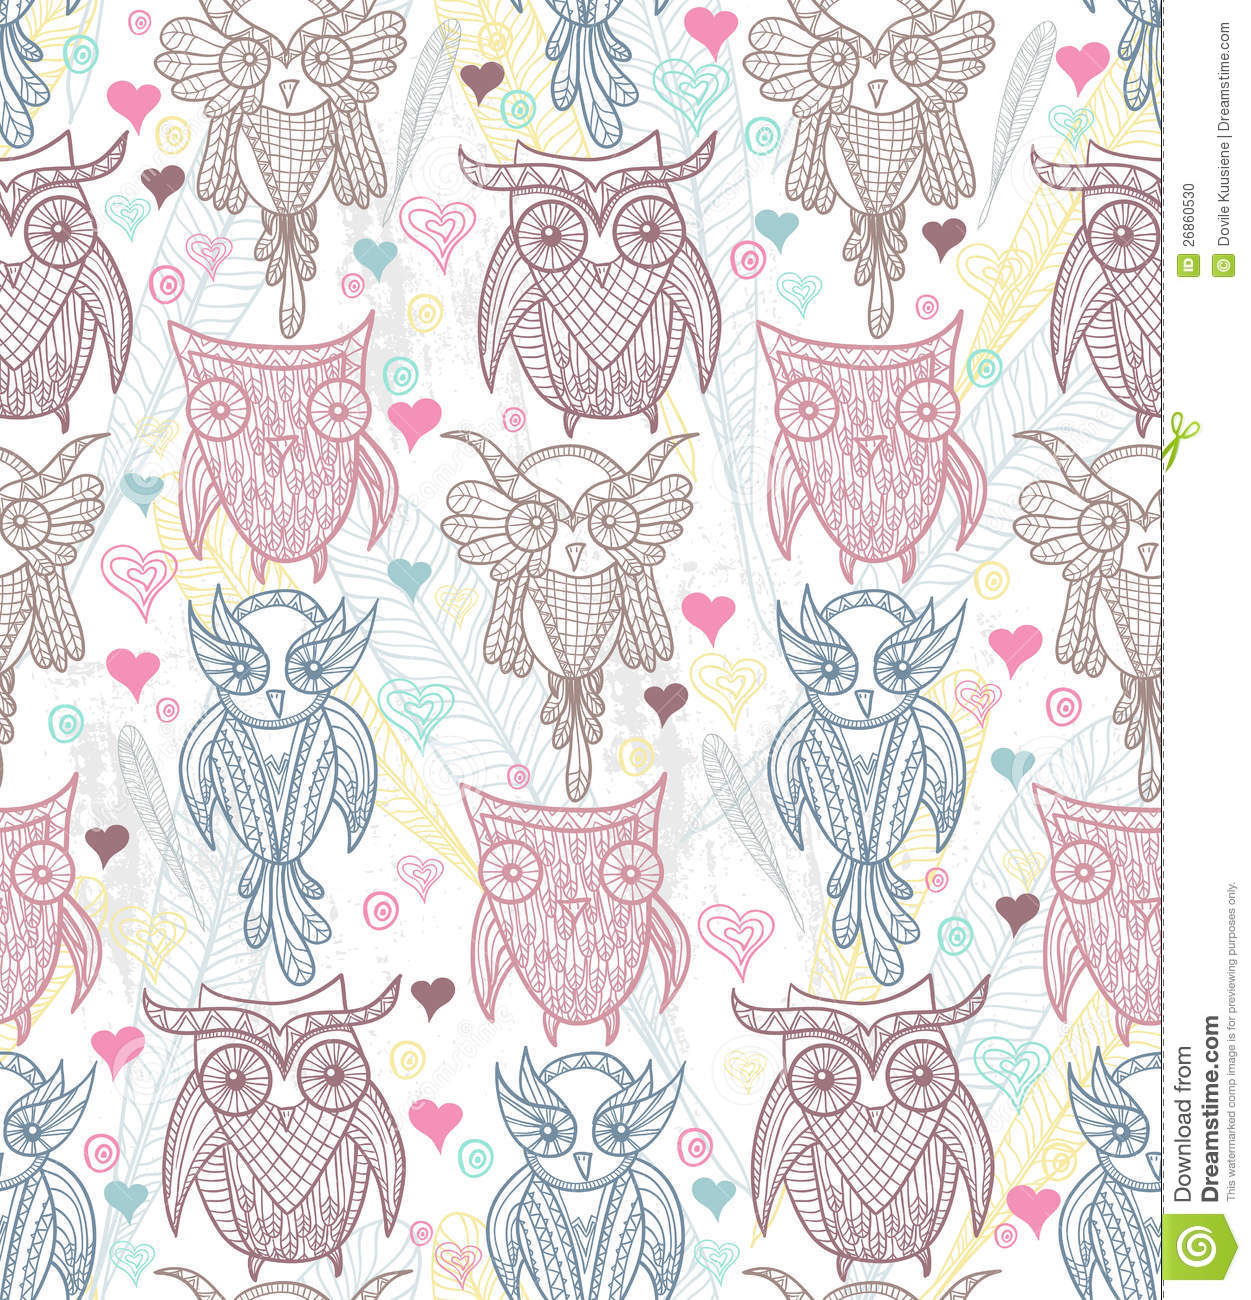 Pictures Of Owl Pattern Wallpaper Tumblr Rock Cafe